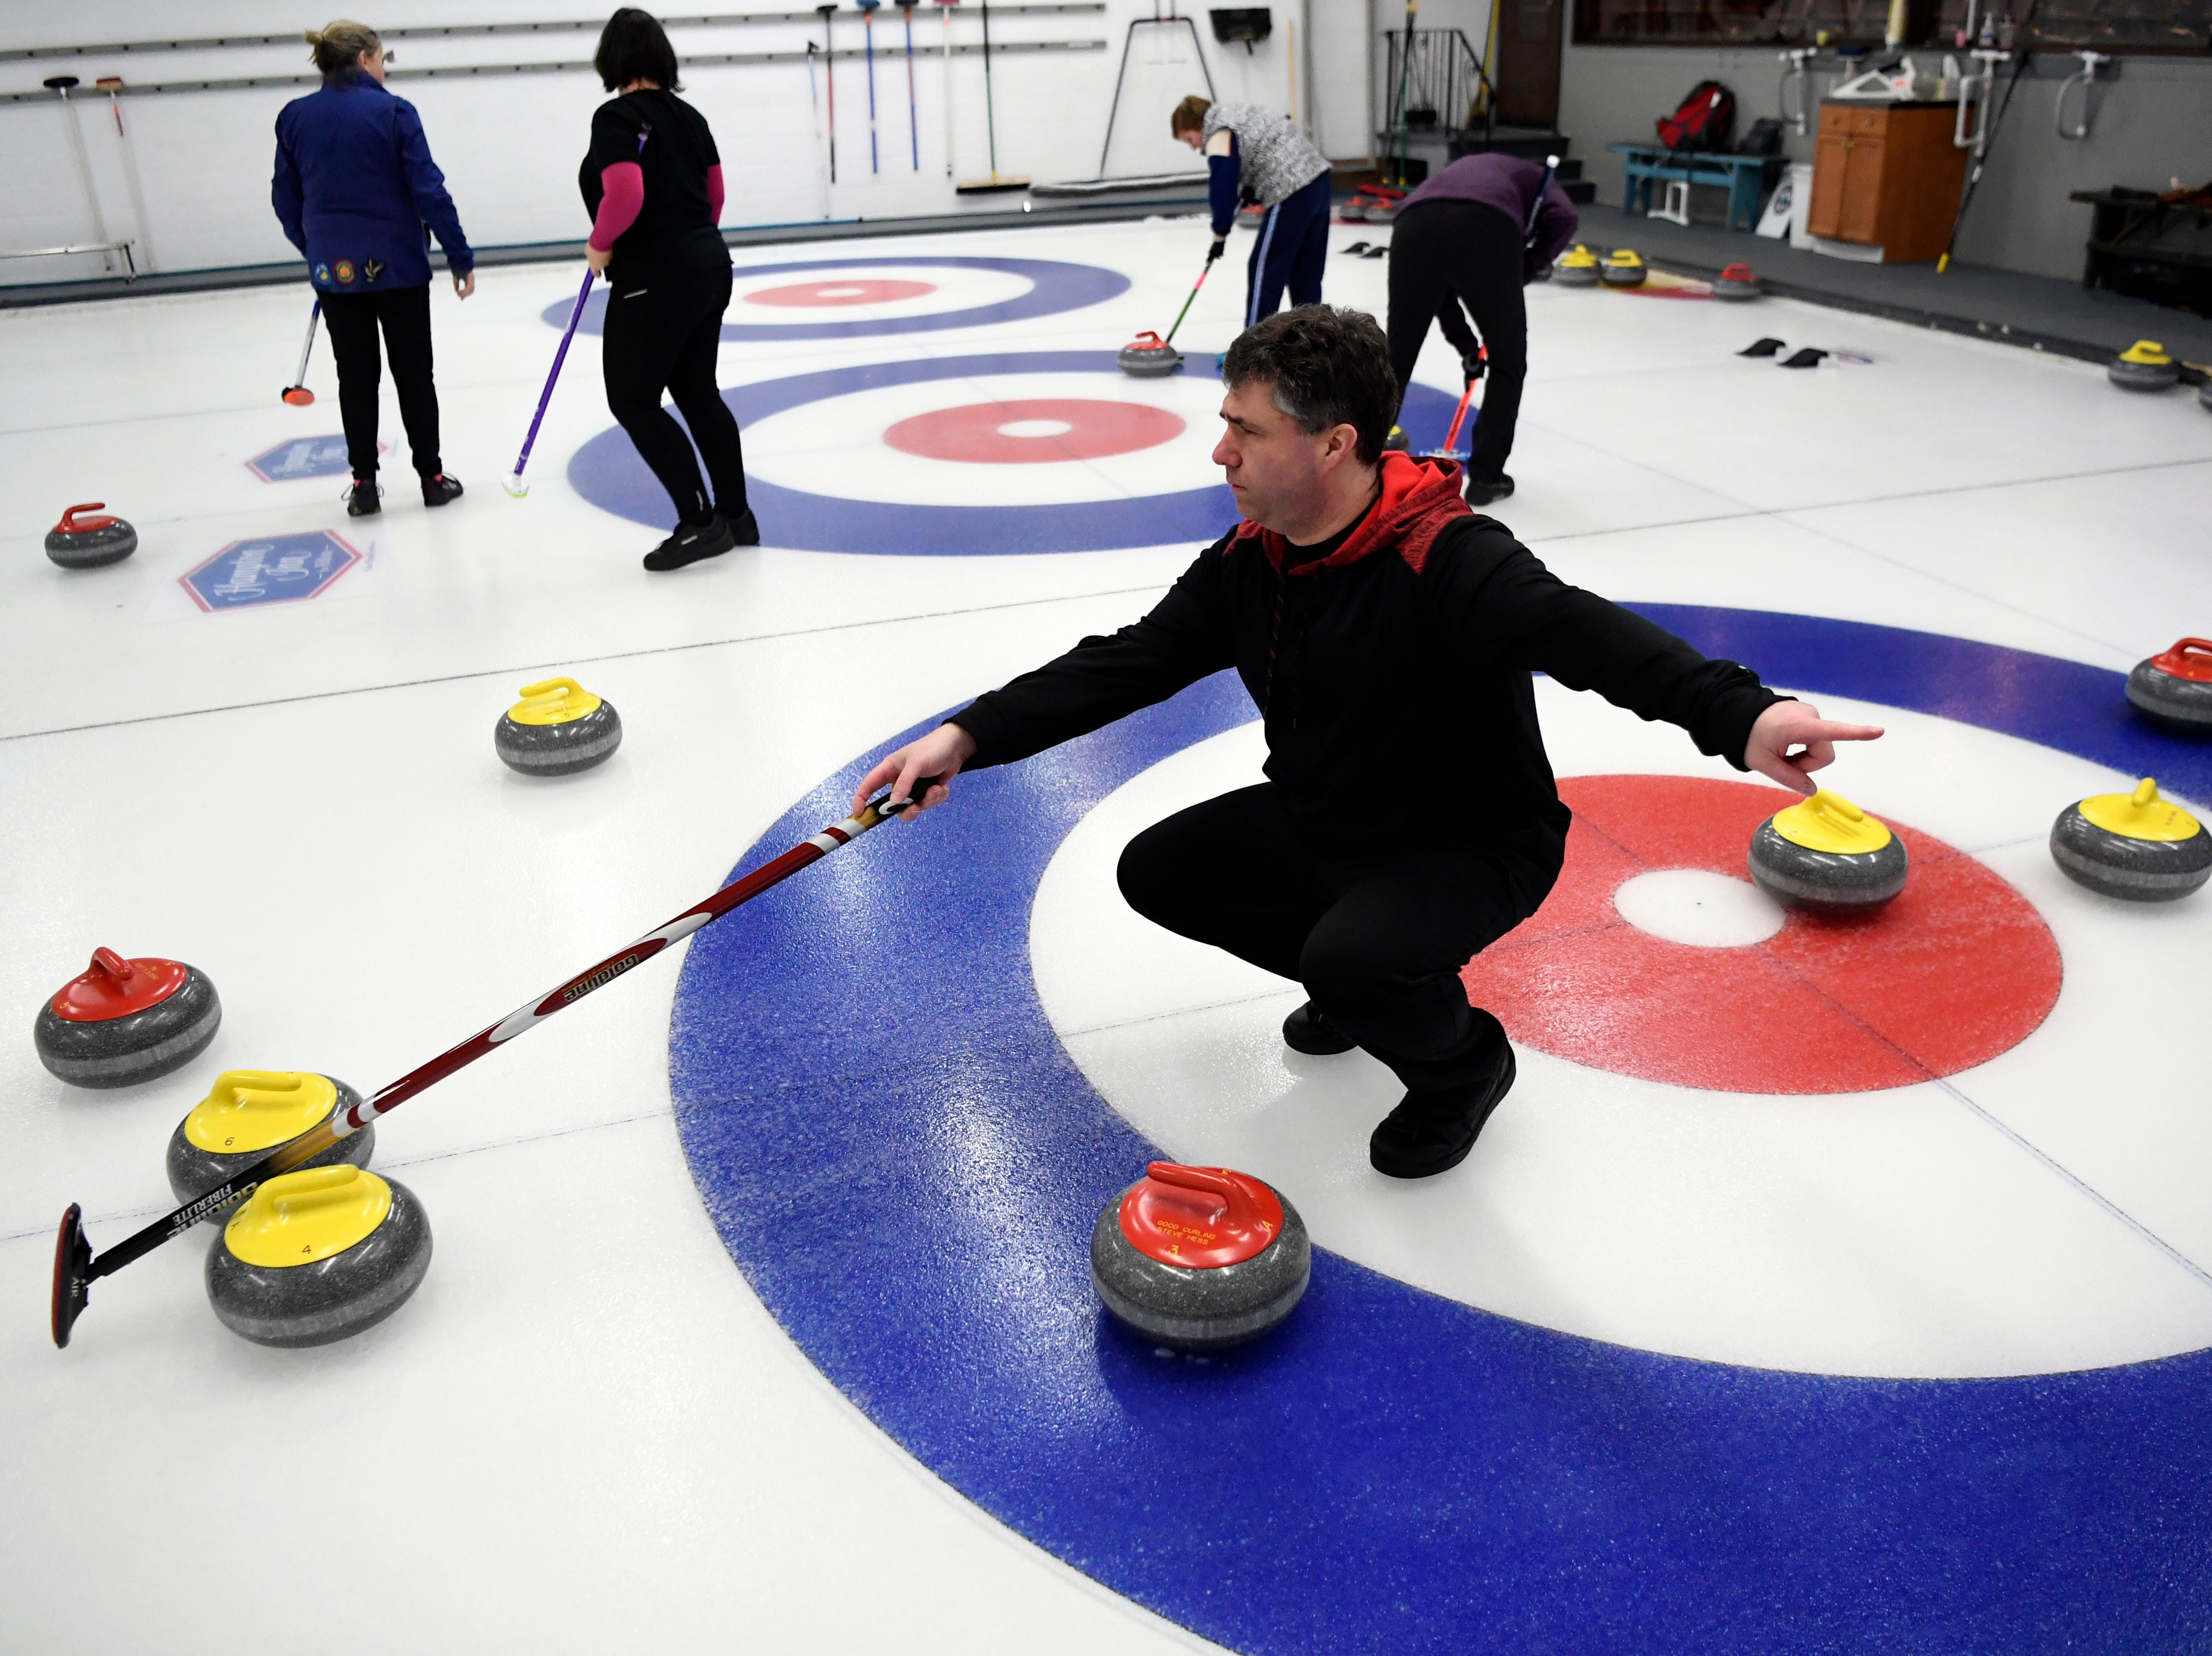 Joe Angelli, foreground, of Hackensack, signals to his thrower during a curling match in the Ardsley Curling Club on Tuesday, January 16, 2018.